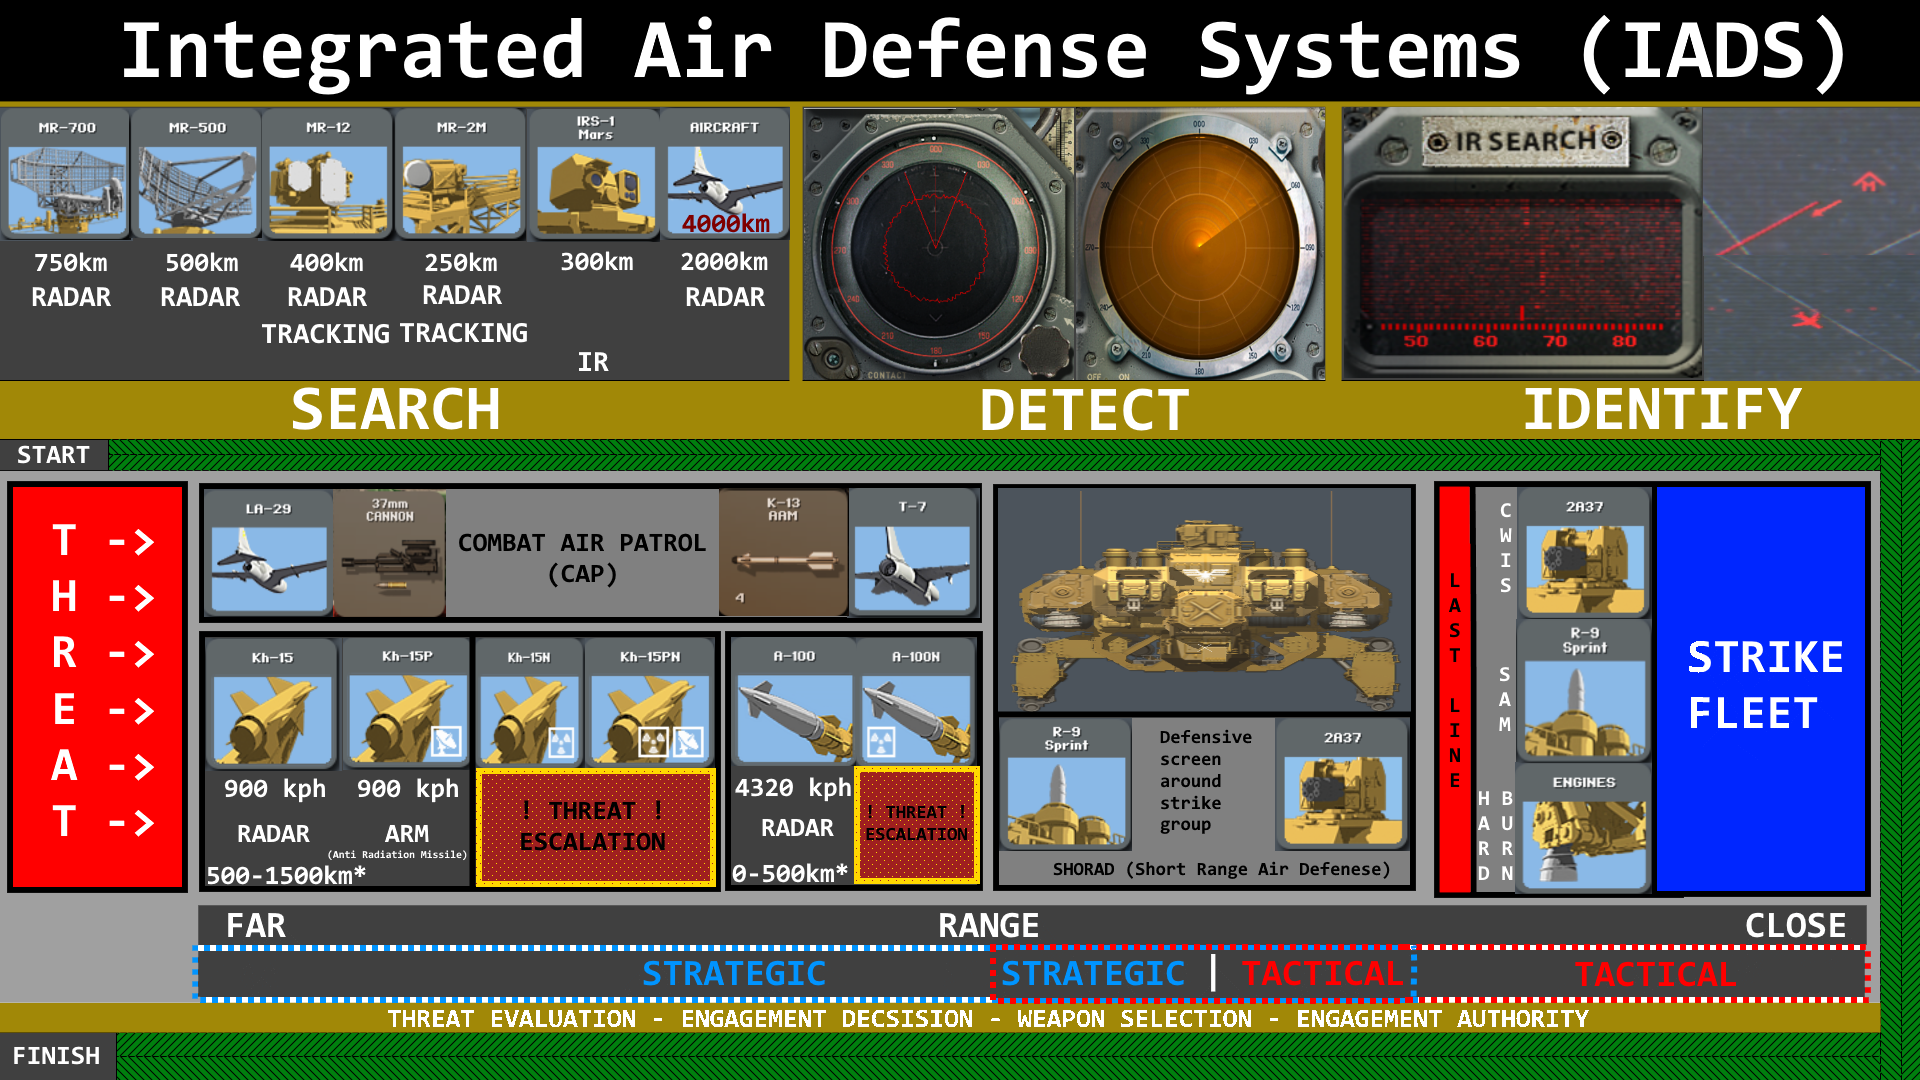 HighFleet Integrated Air Defense Systems Guide image 1